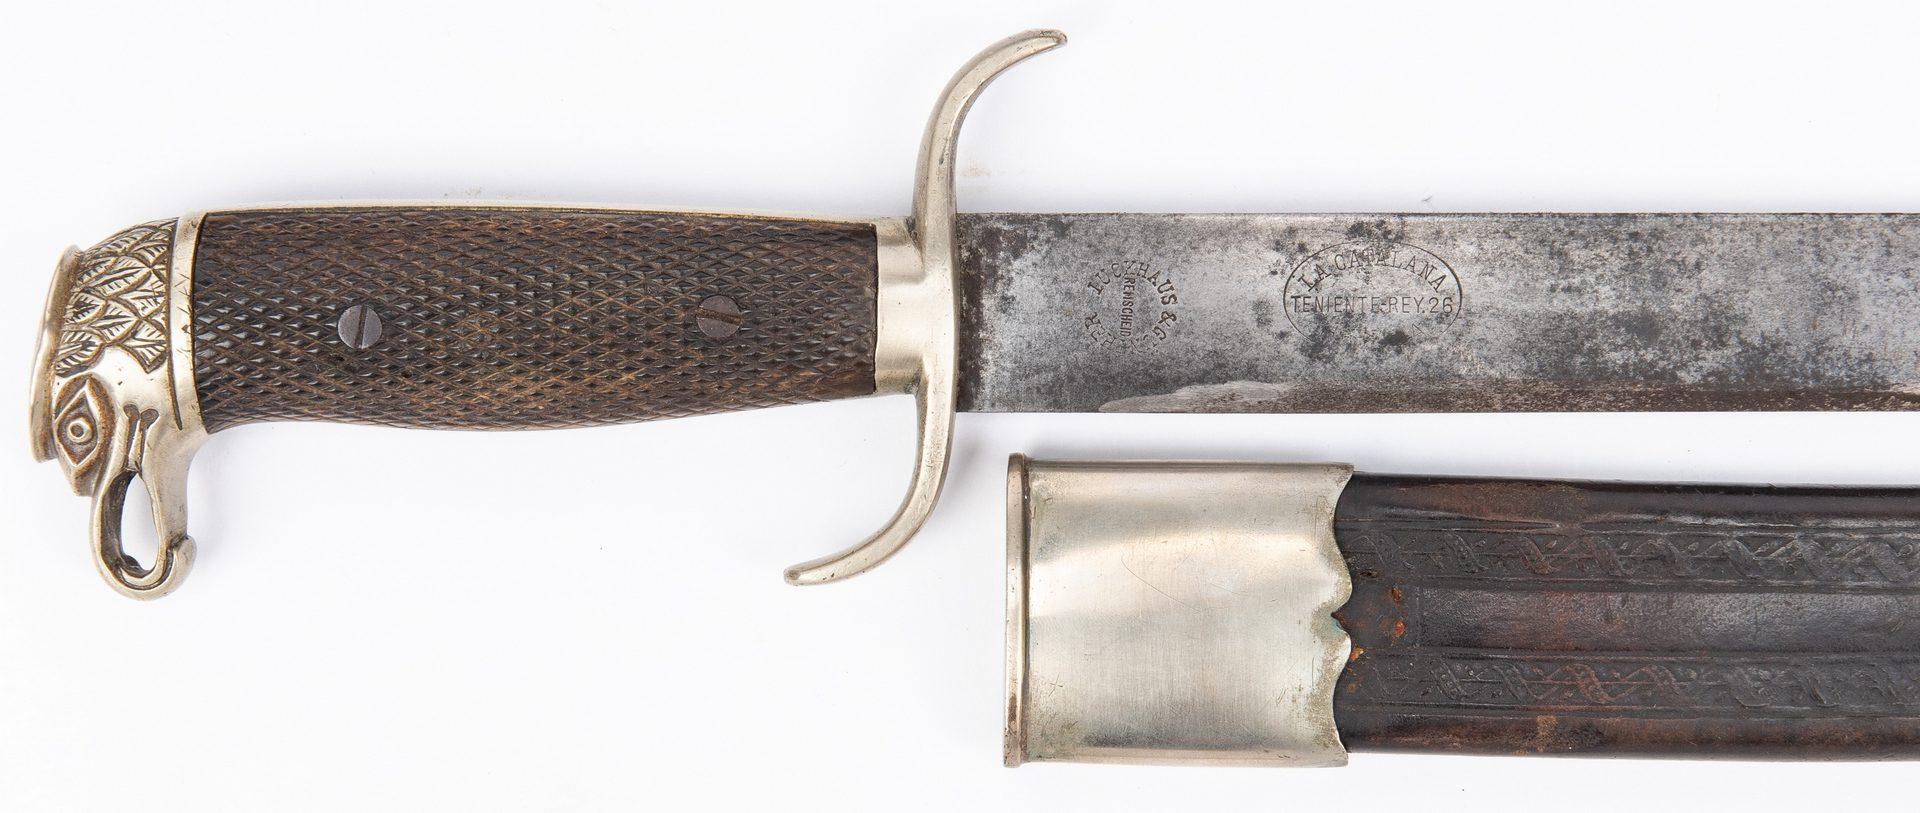 Lot 184: 2 19th Cent. Firearms, 1 WWI era German Machete, 3 items